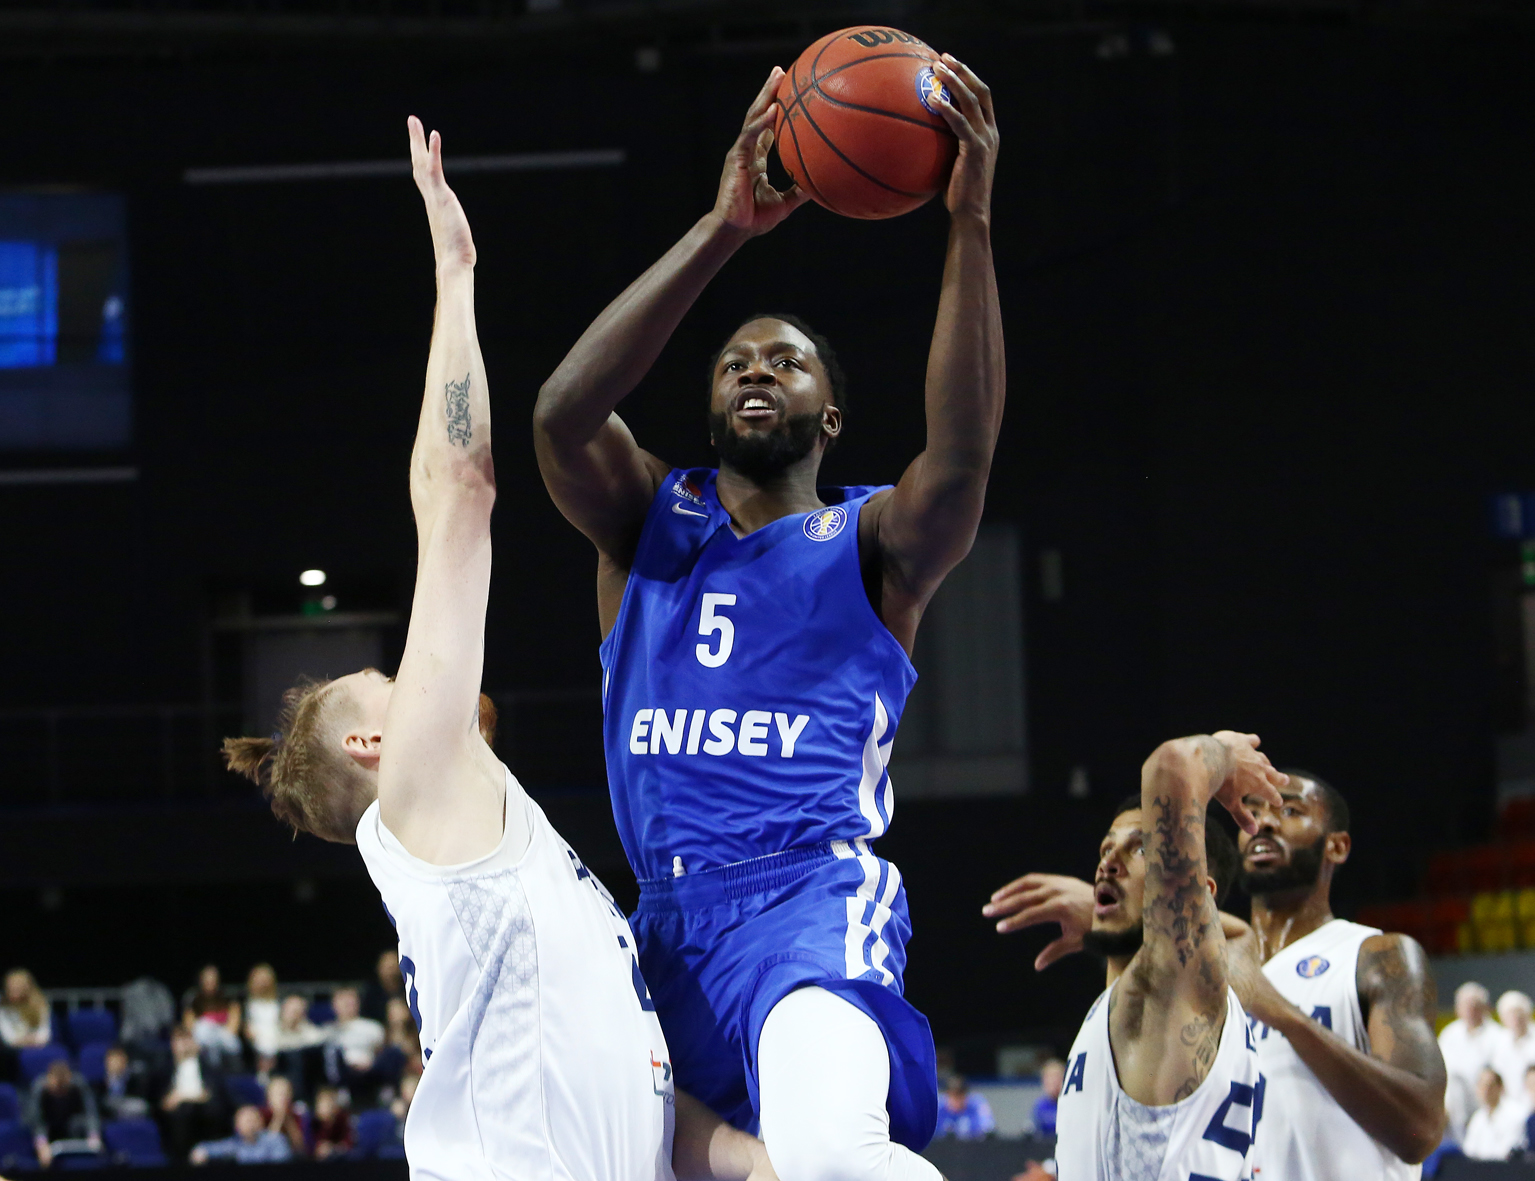 Harrison-Young Duo Lift Enisey Over PARMA